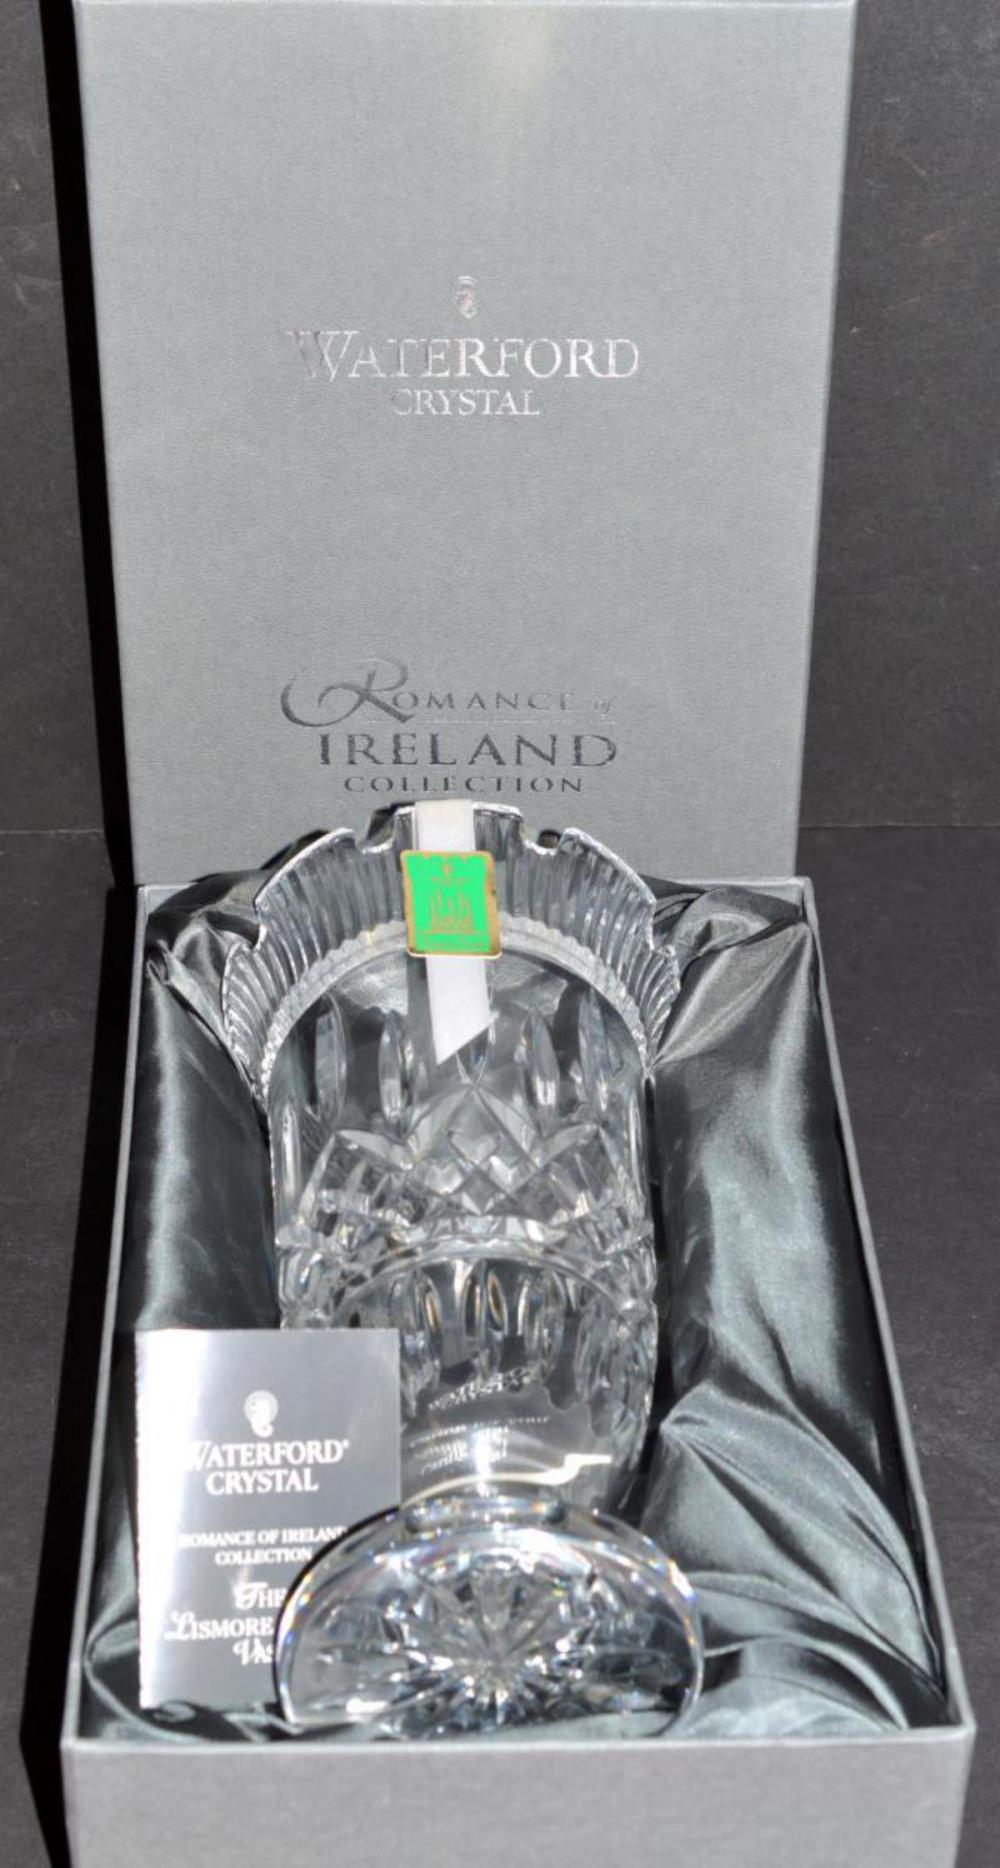 Waterford Crystal Vase in Box the Lismore Castle